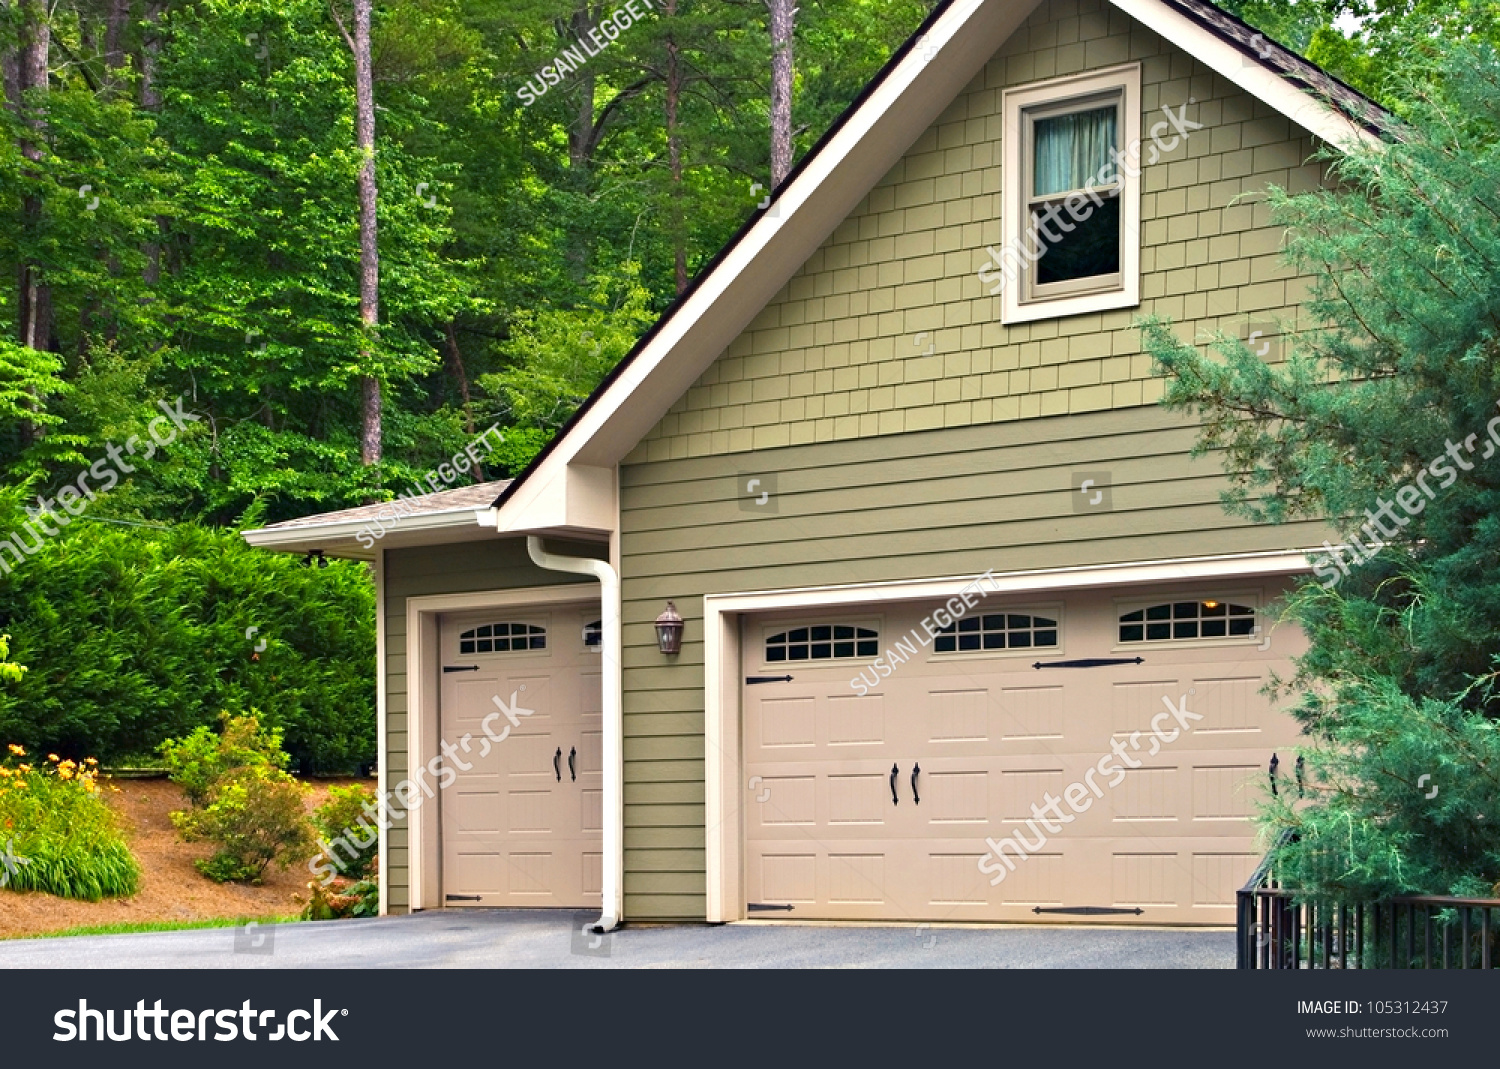 Garage Doors On Modern House. Double Doors, With Windows, On One ... - ^